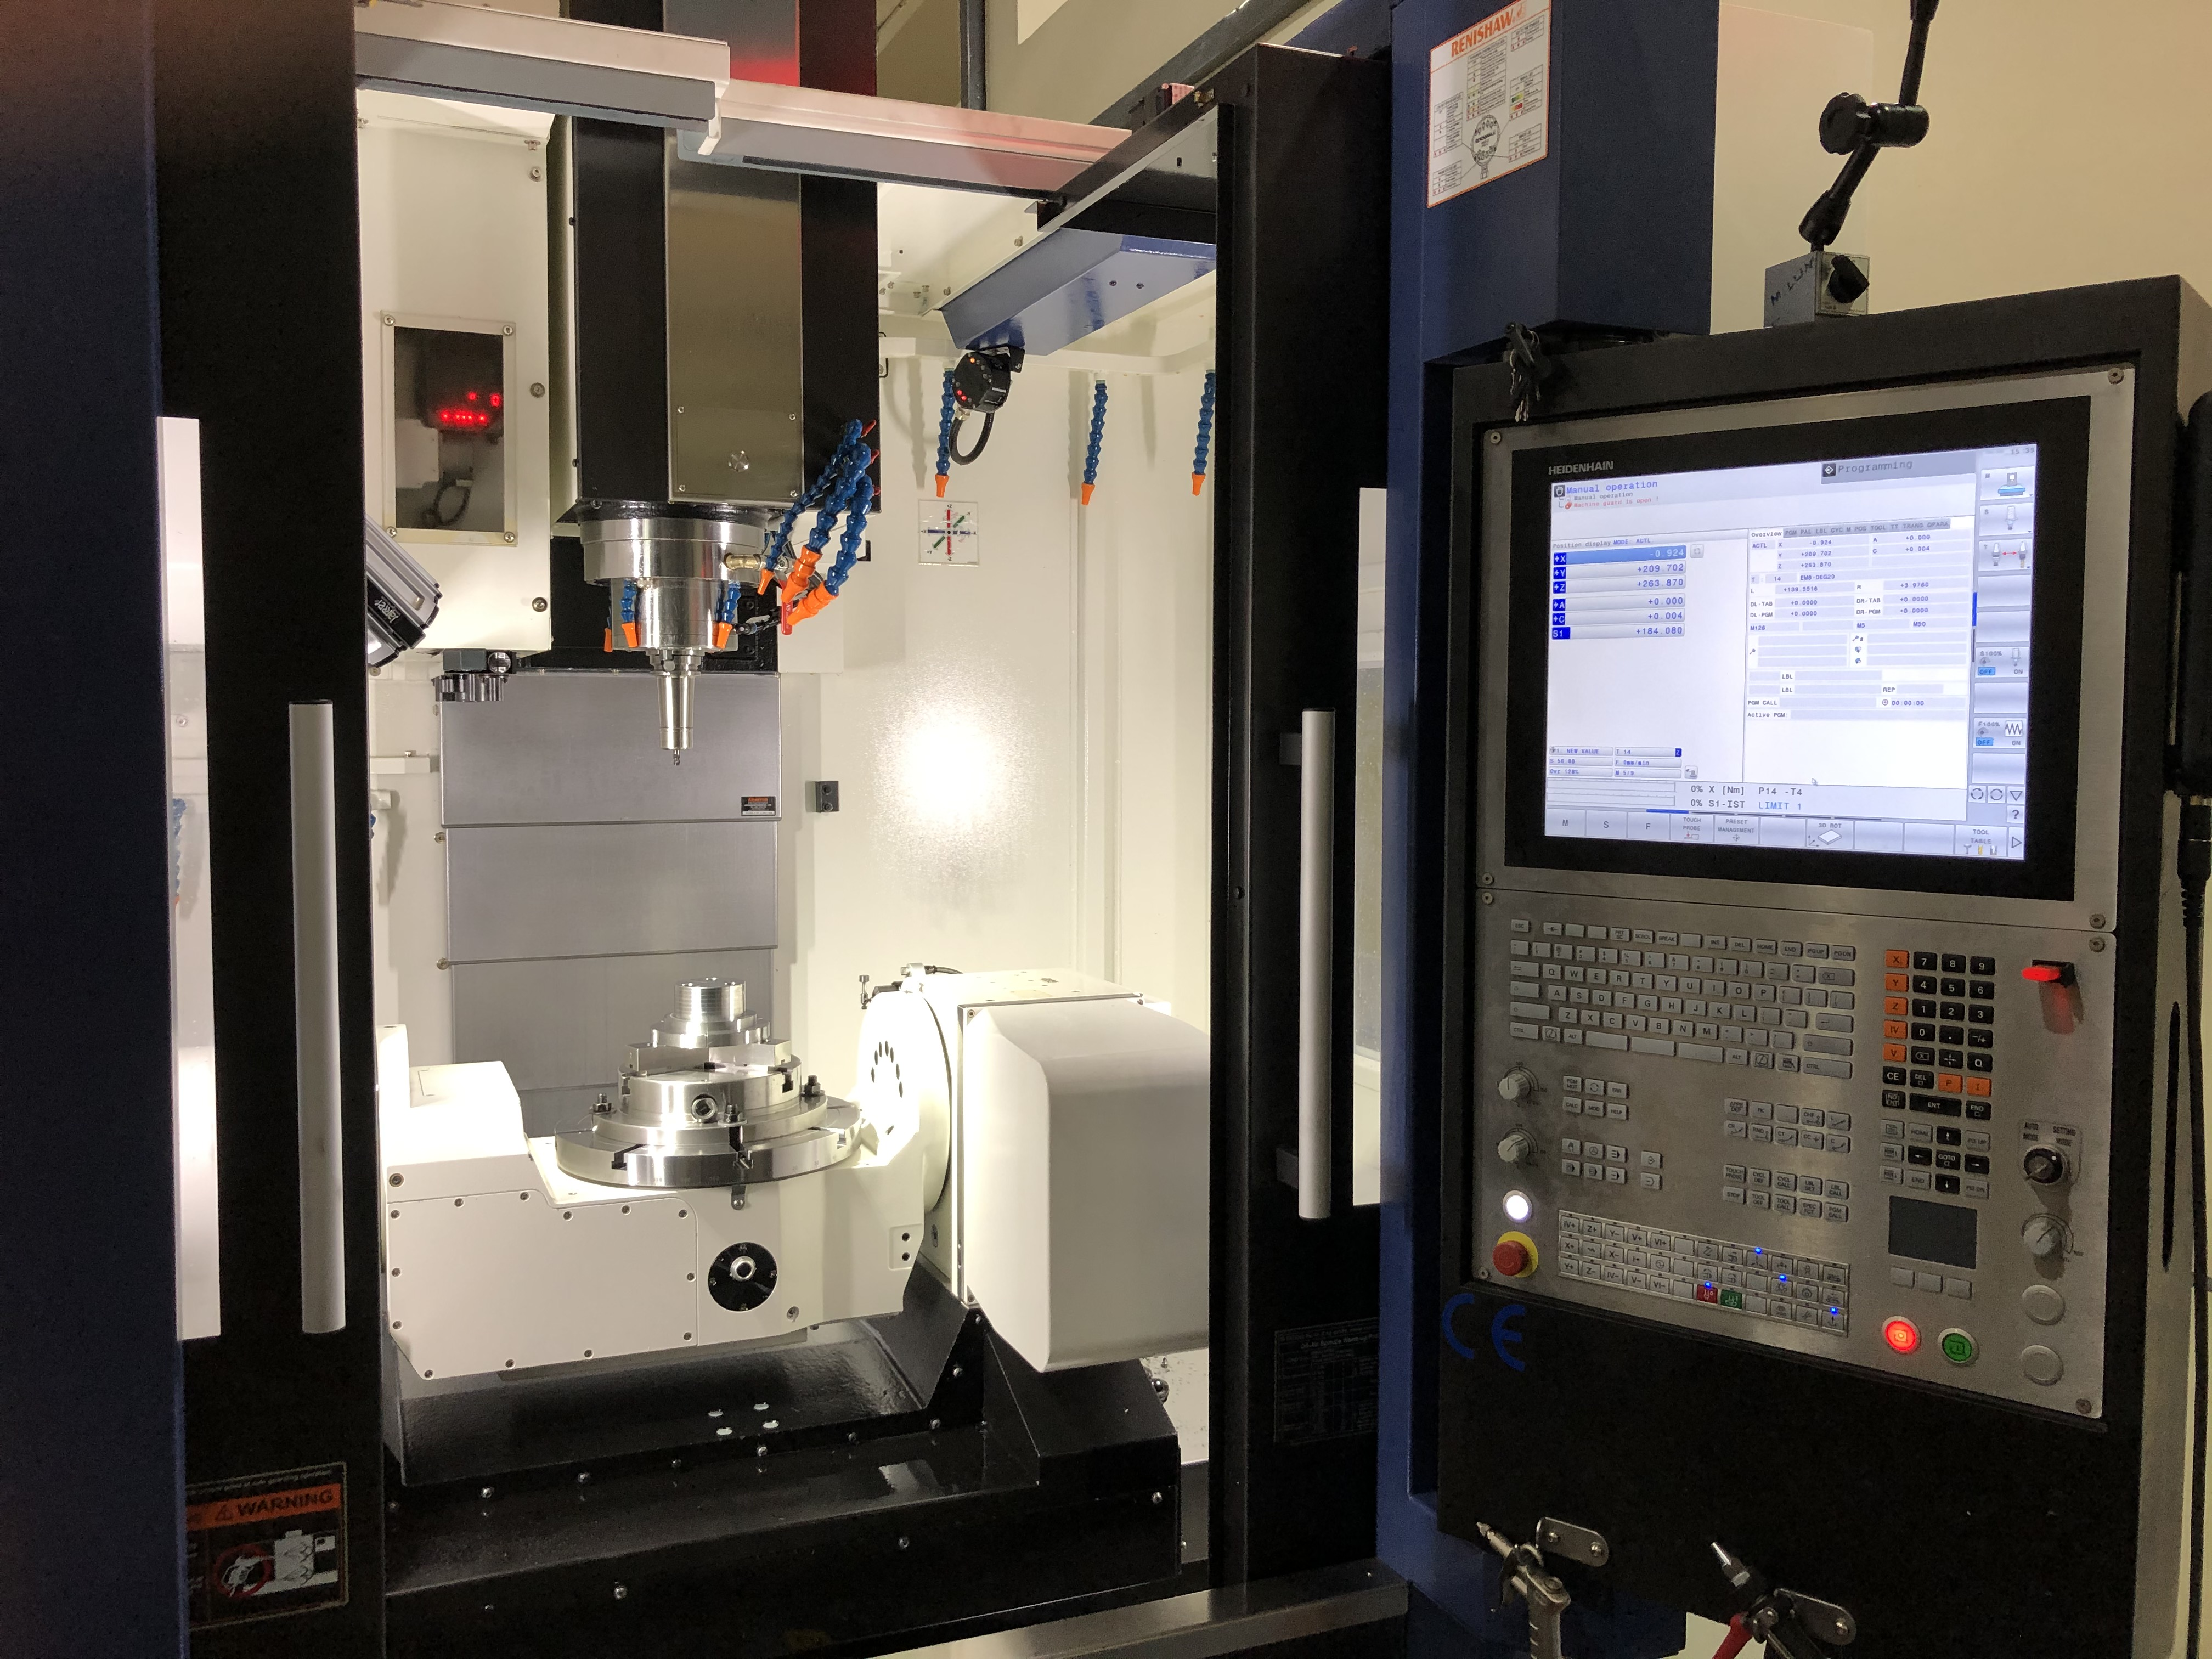 CDI Increases Production Capabilities with 5-Axis CNC Milling Equipment